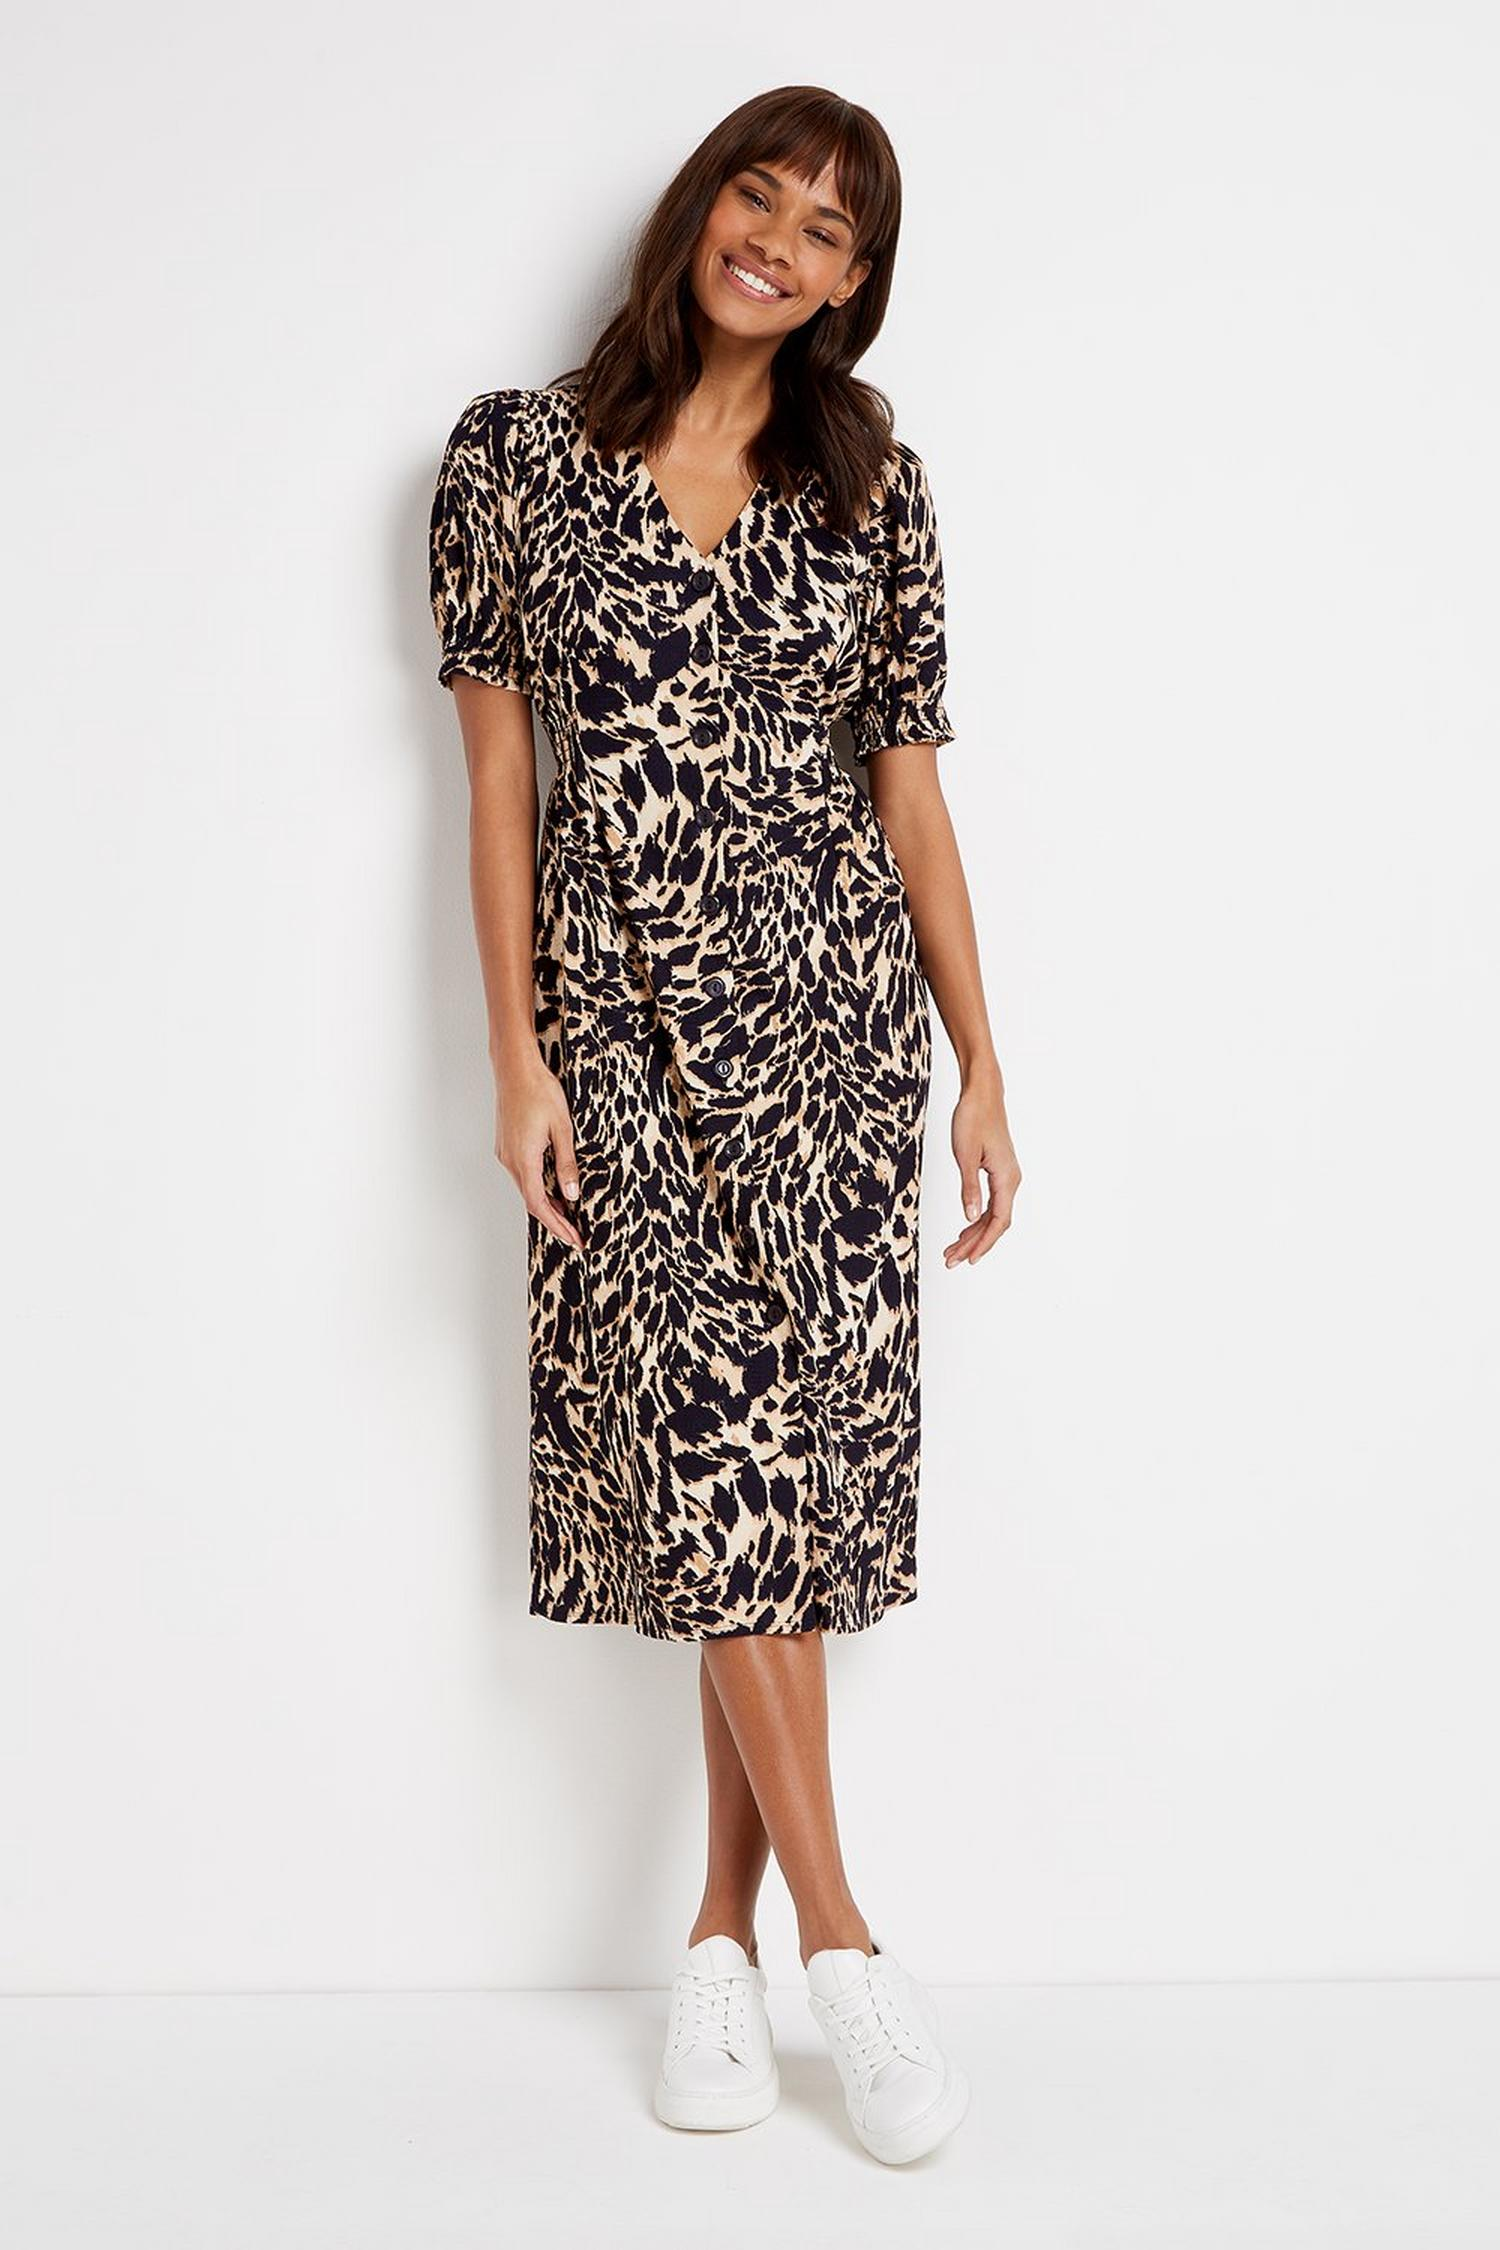 109 TALL Brown Animal Print Midi Dress image number 3